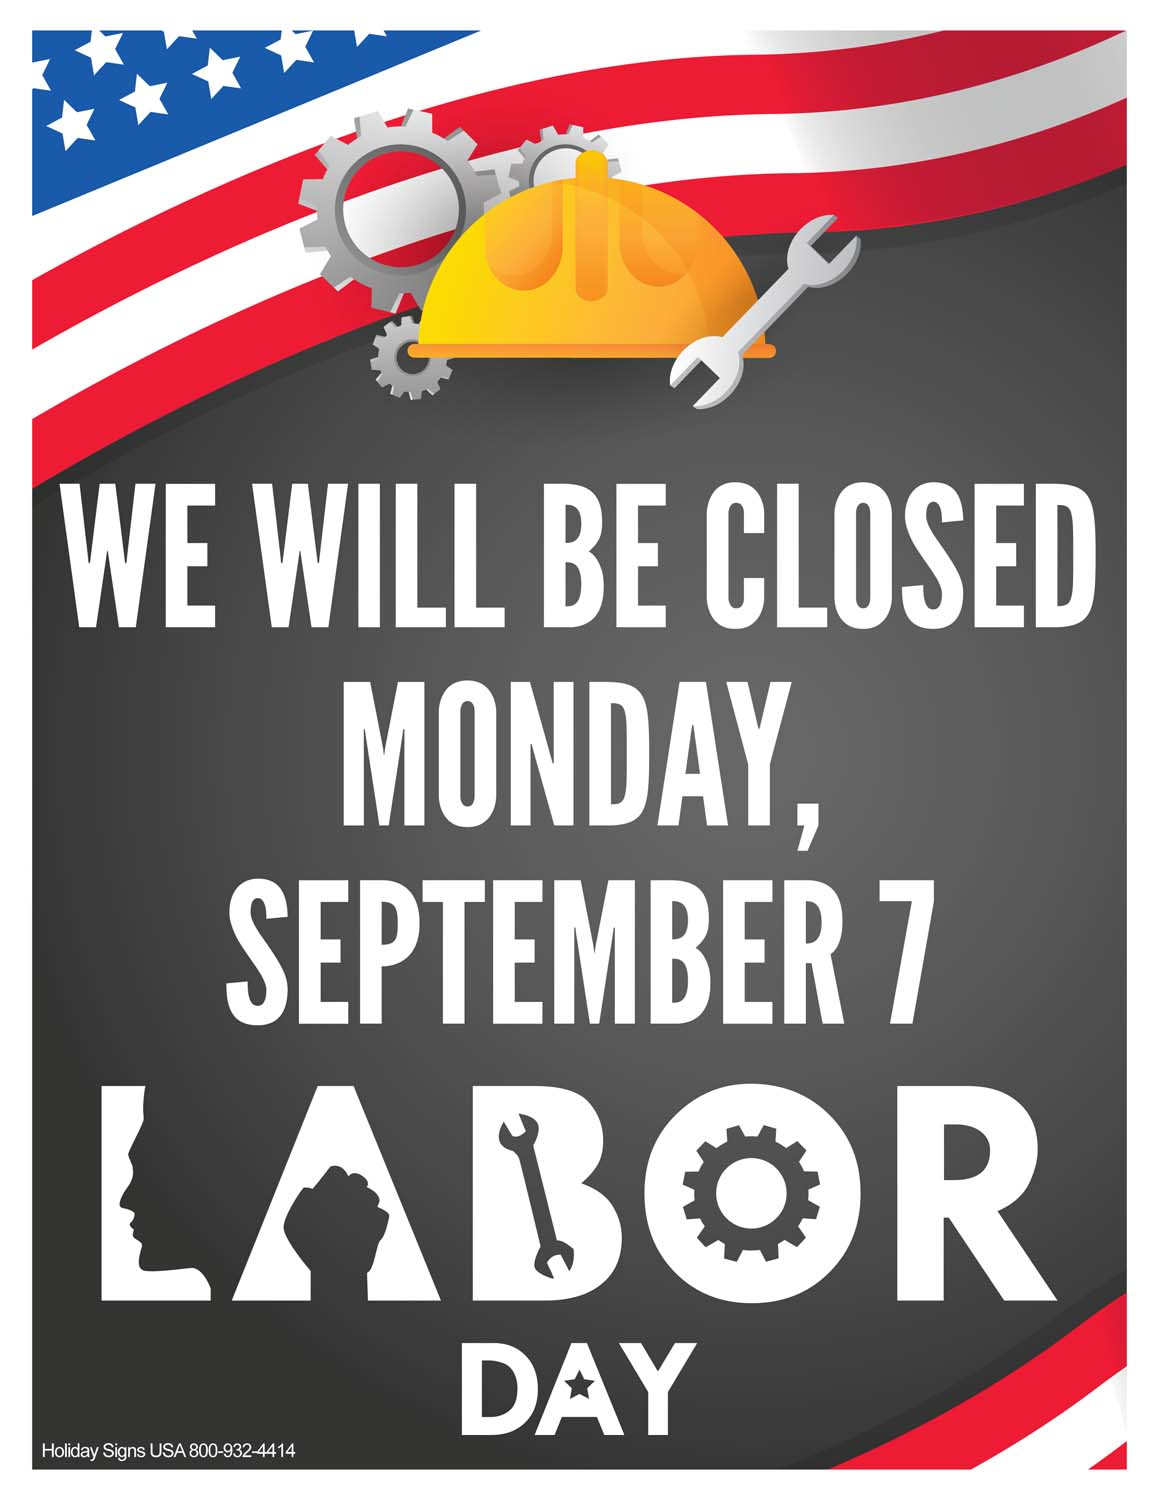 Holiday Signs USA | business holiday closing signs